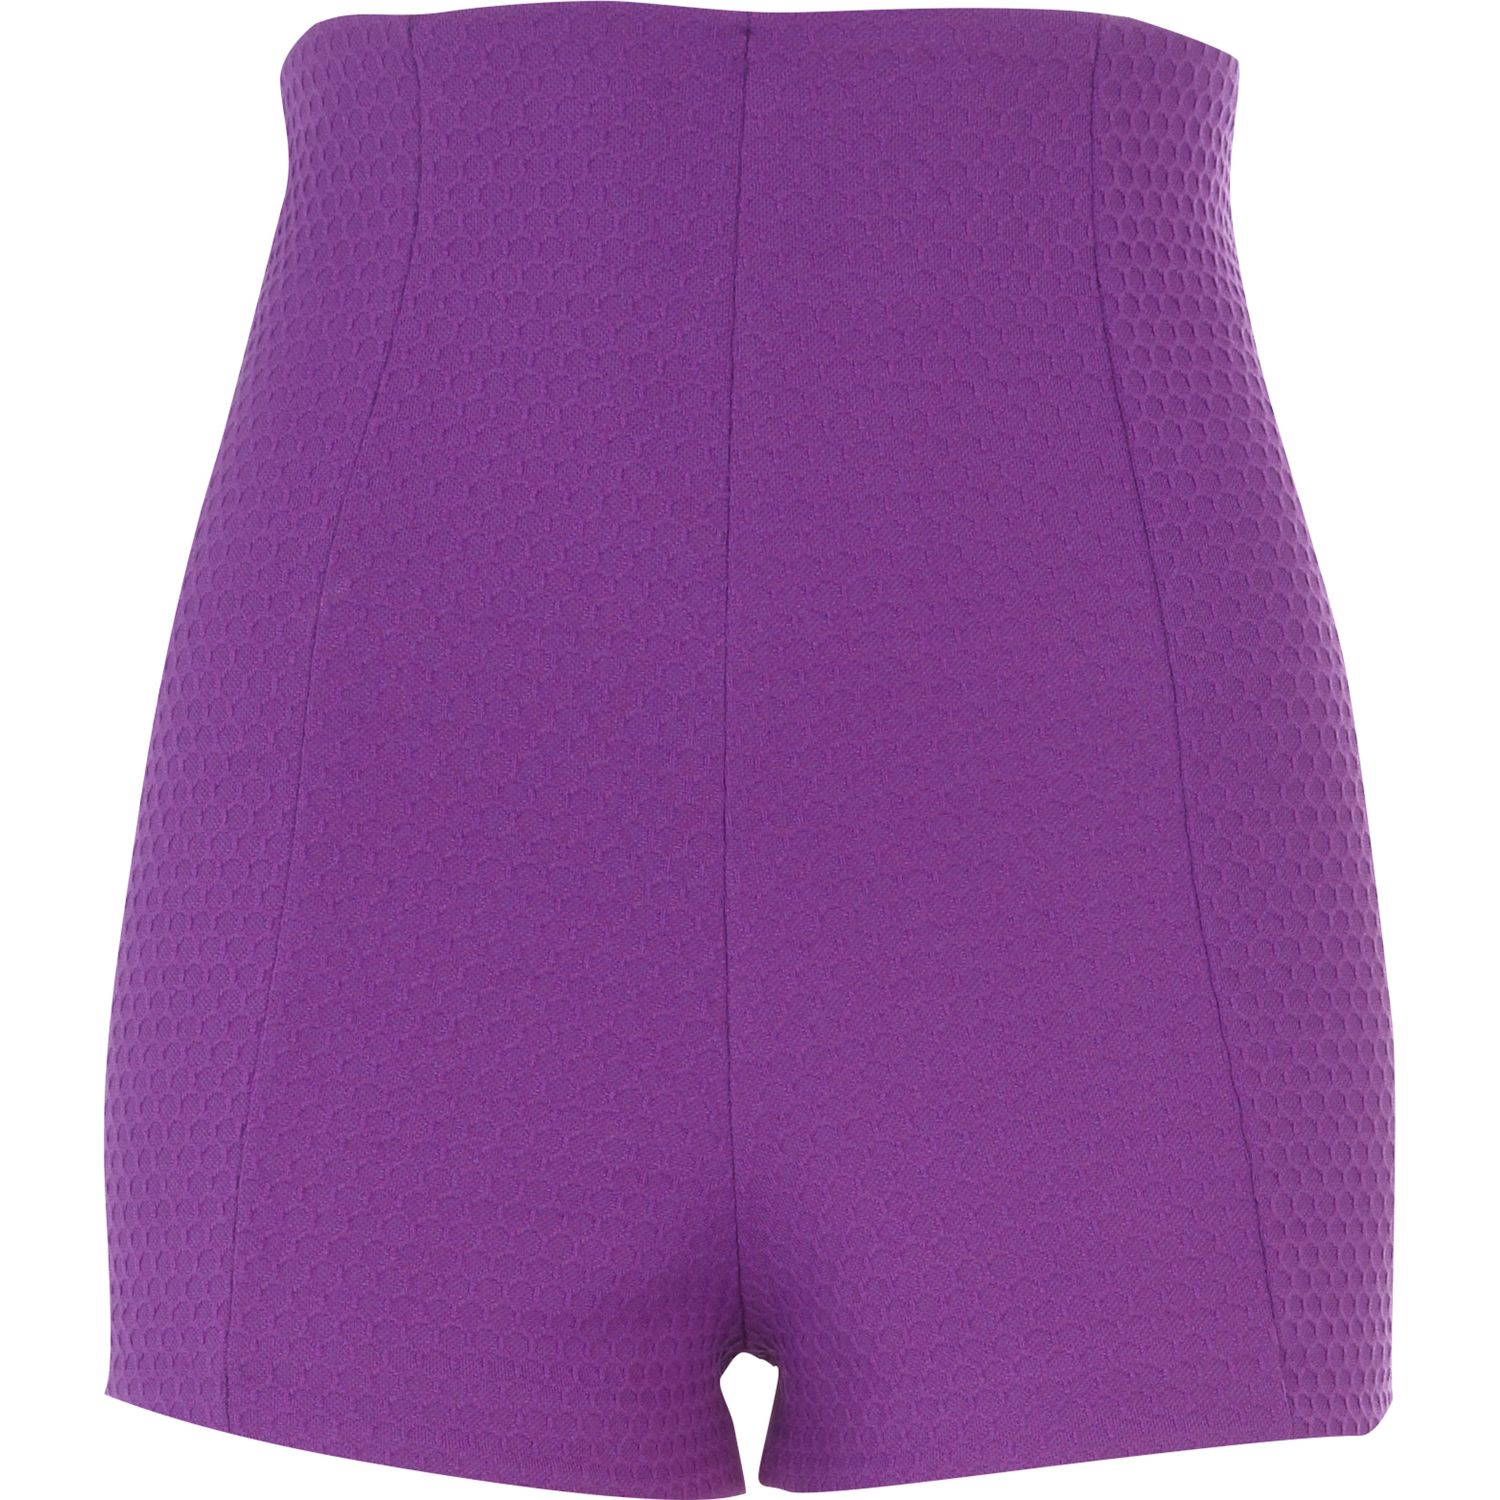 River island Purple Textured High Waisted Shorts in Purple | Lyst